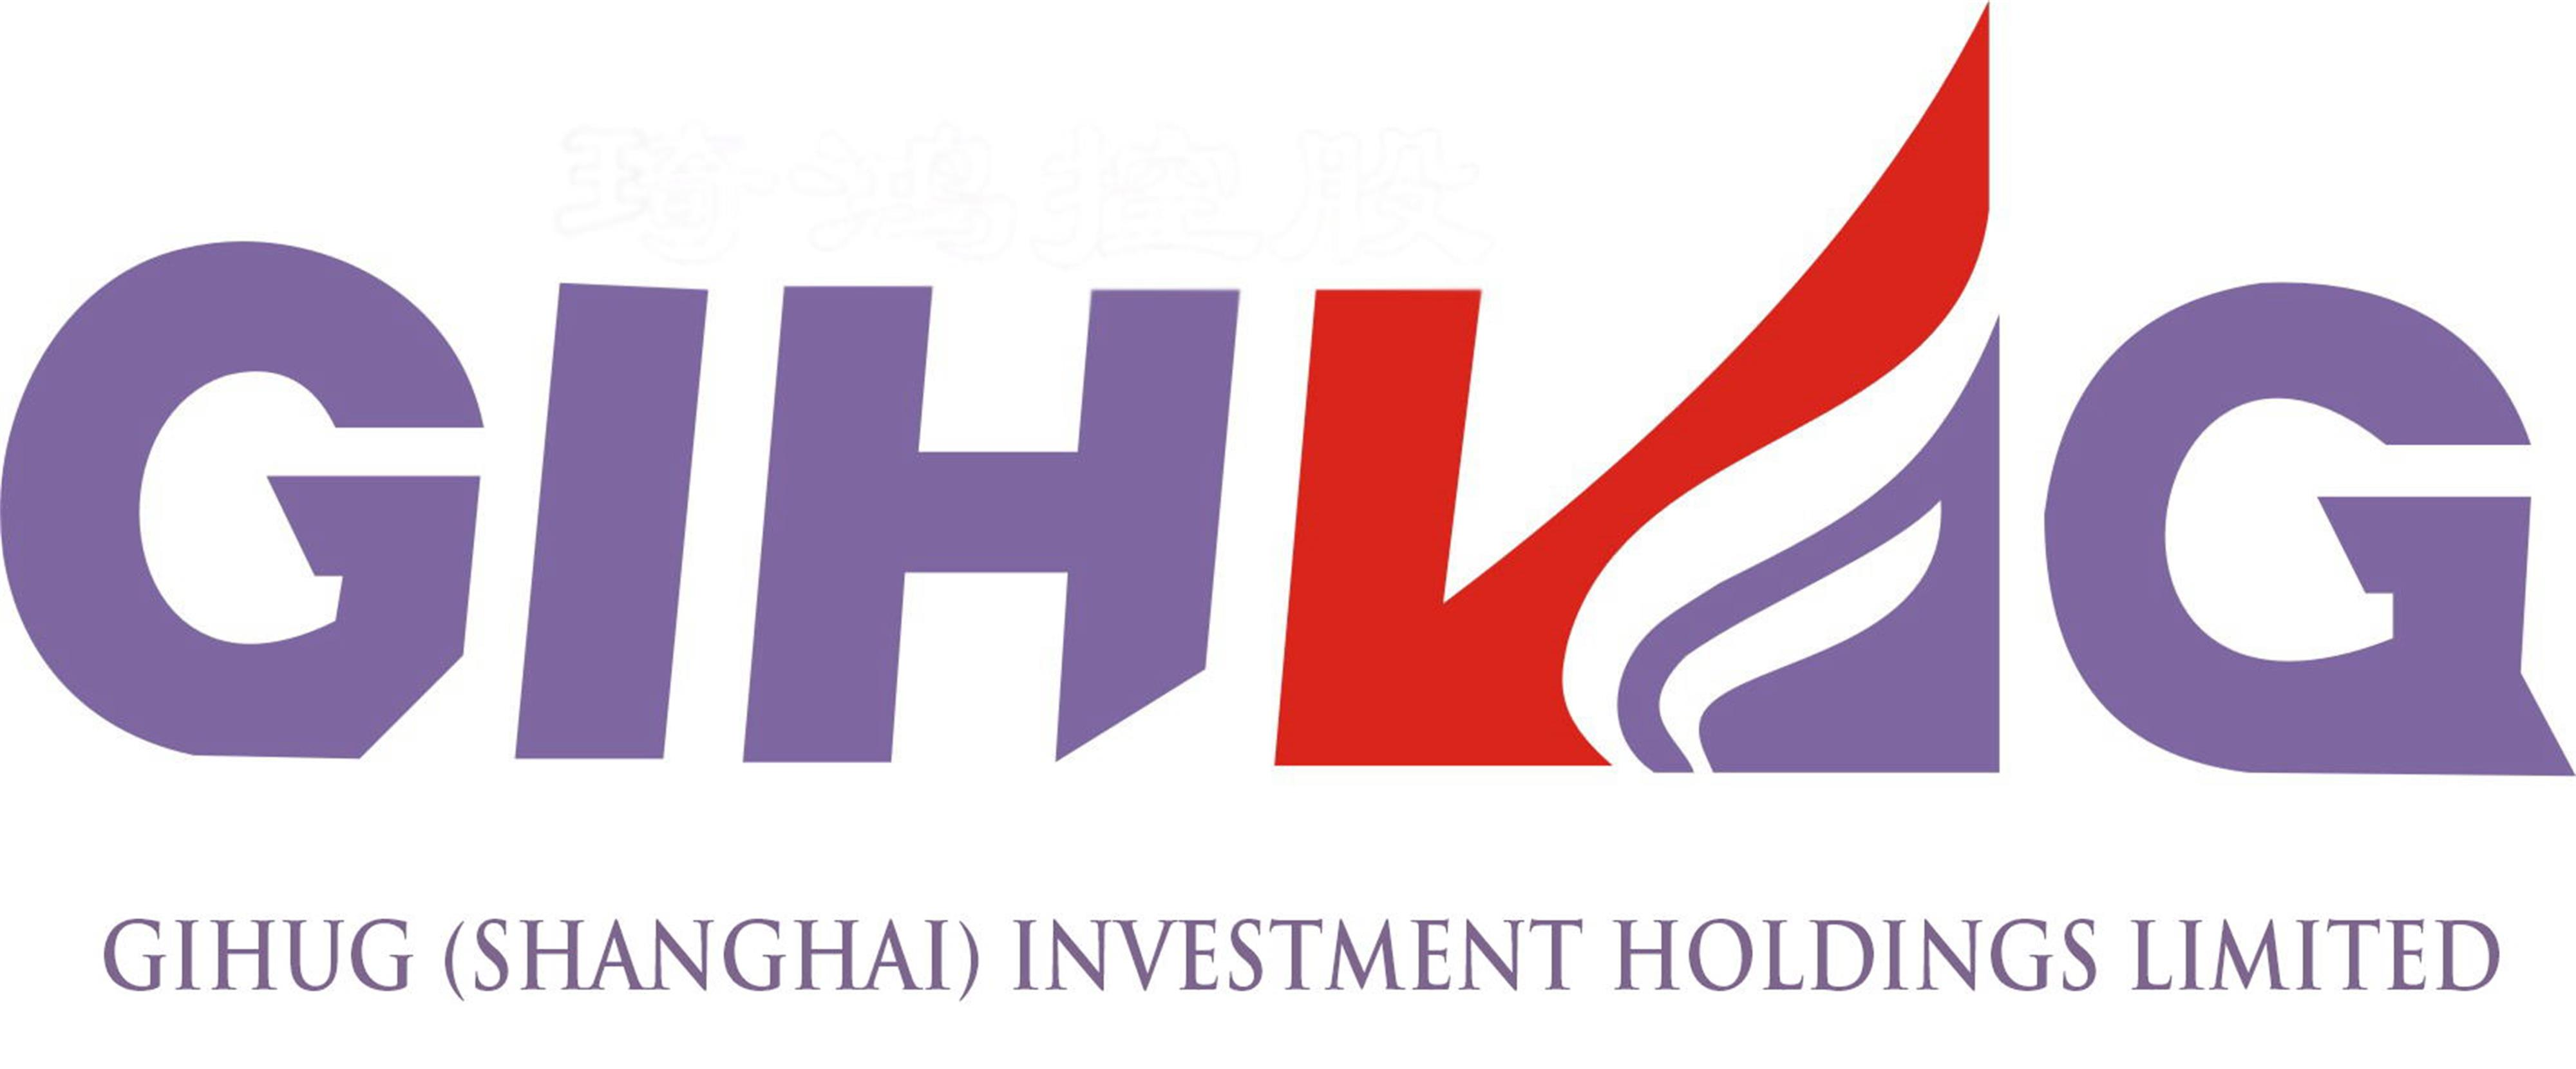 Gihug (shanghai) Investment Holdings Limited Main Image